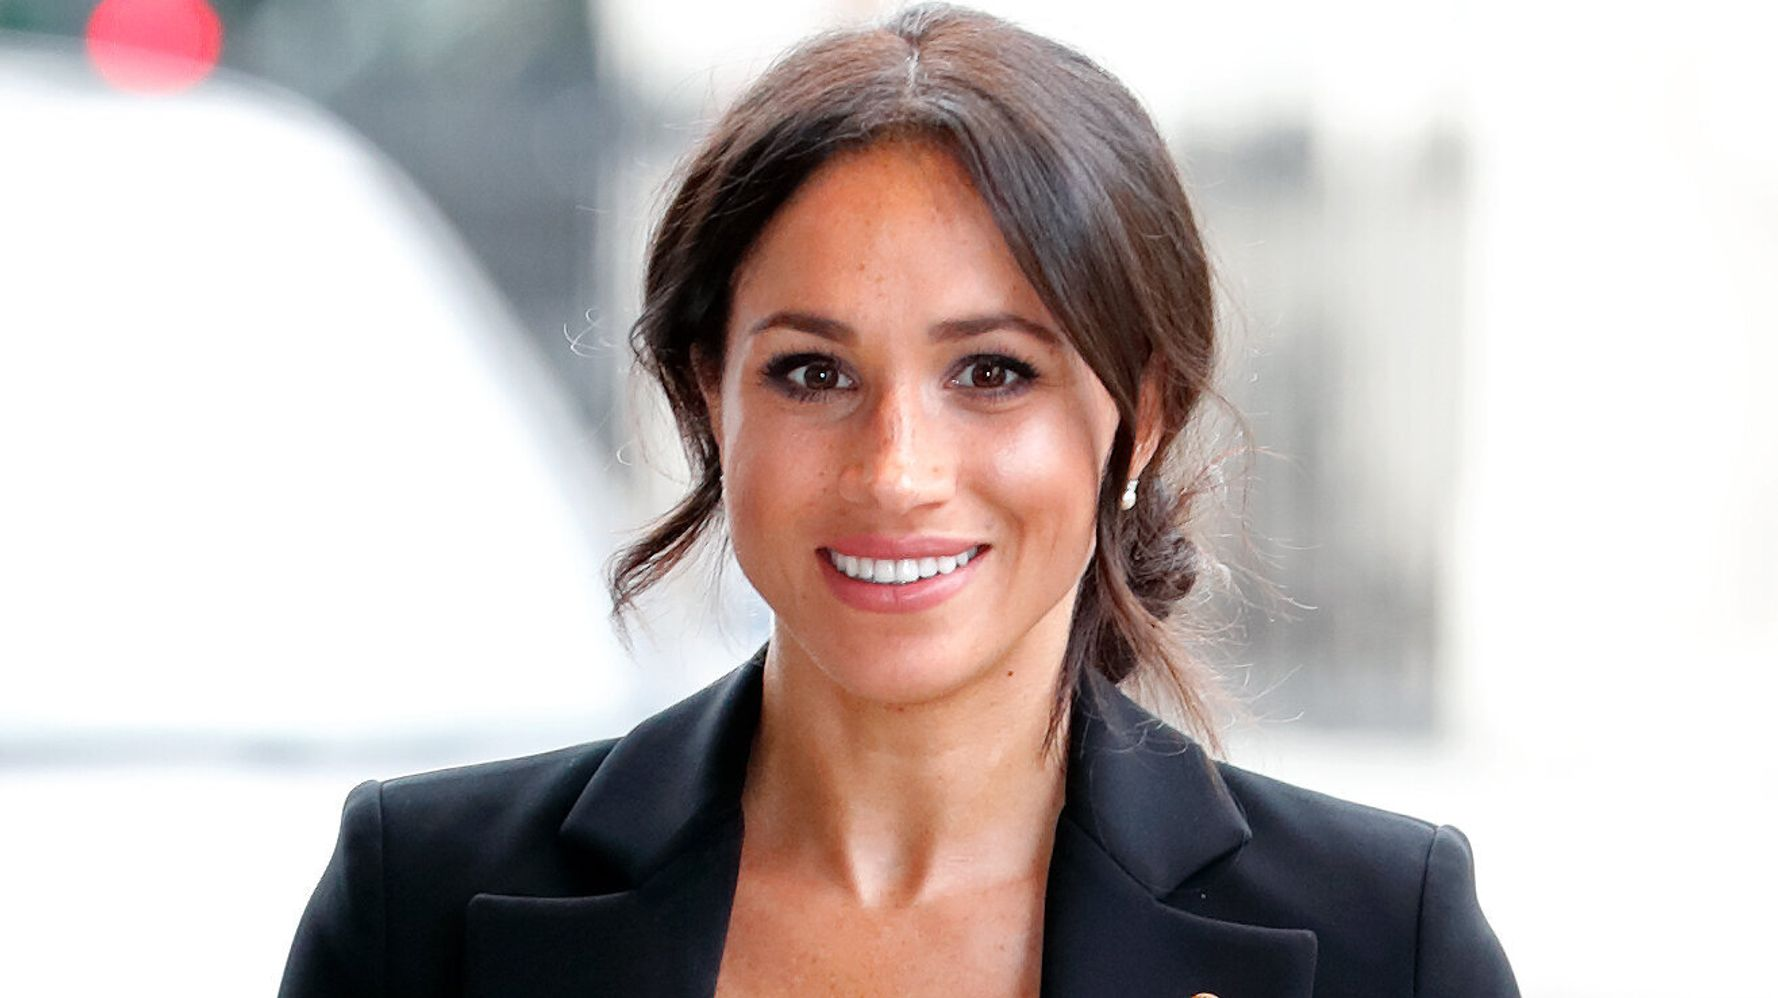 Meghan Markle seeks $2.1 Million In Costs After Court Privacy Win - HuffPost